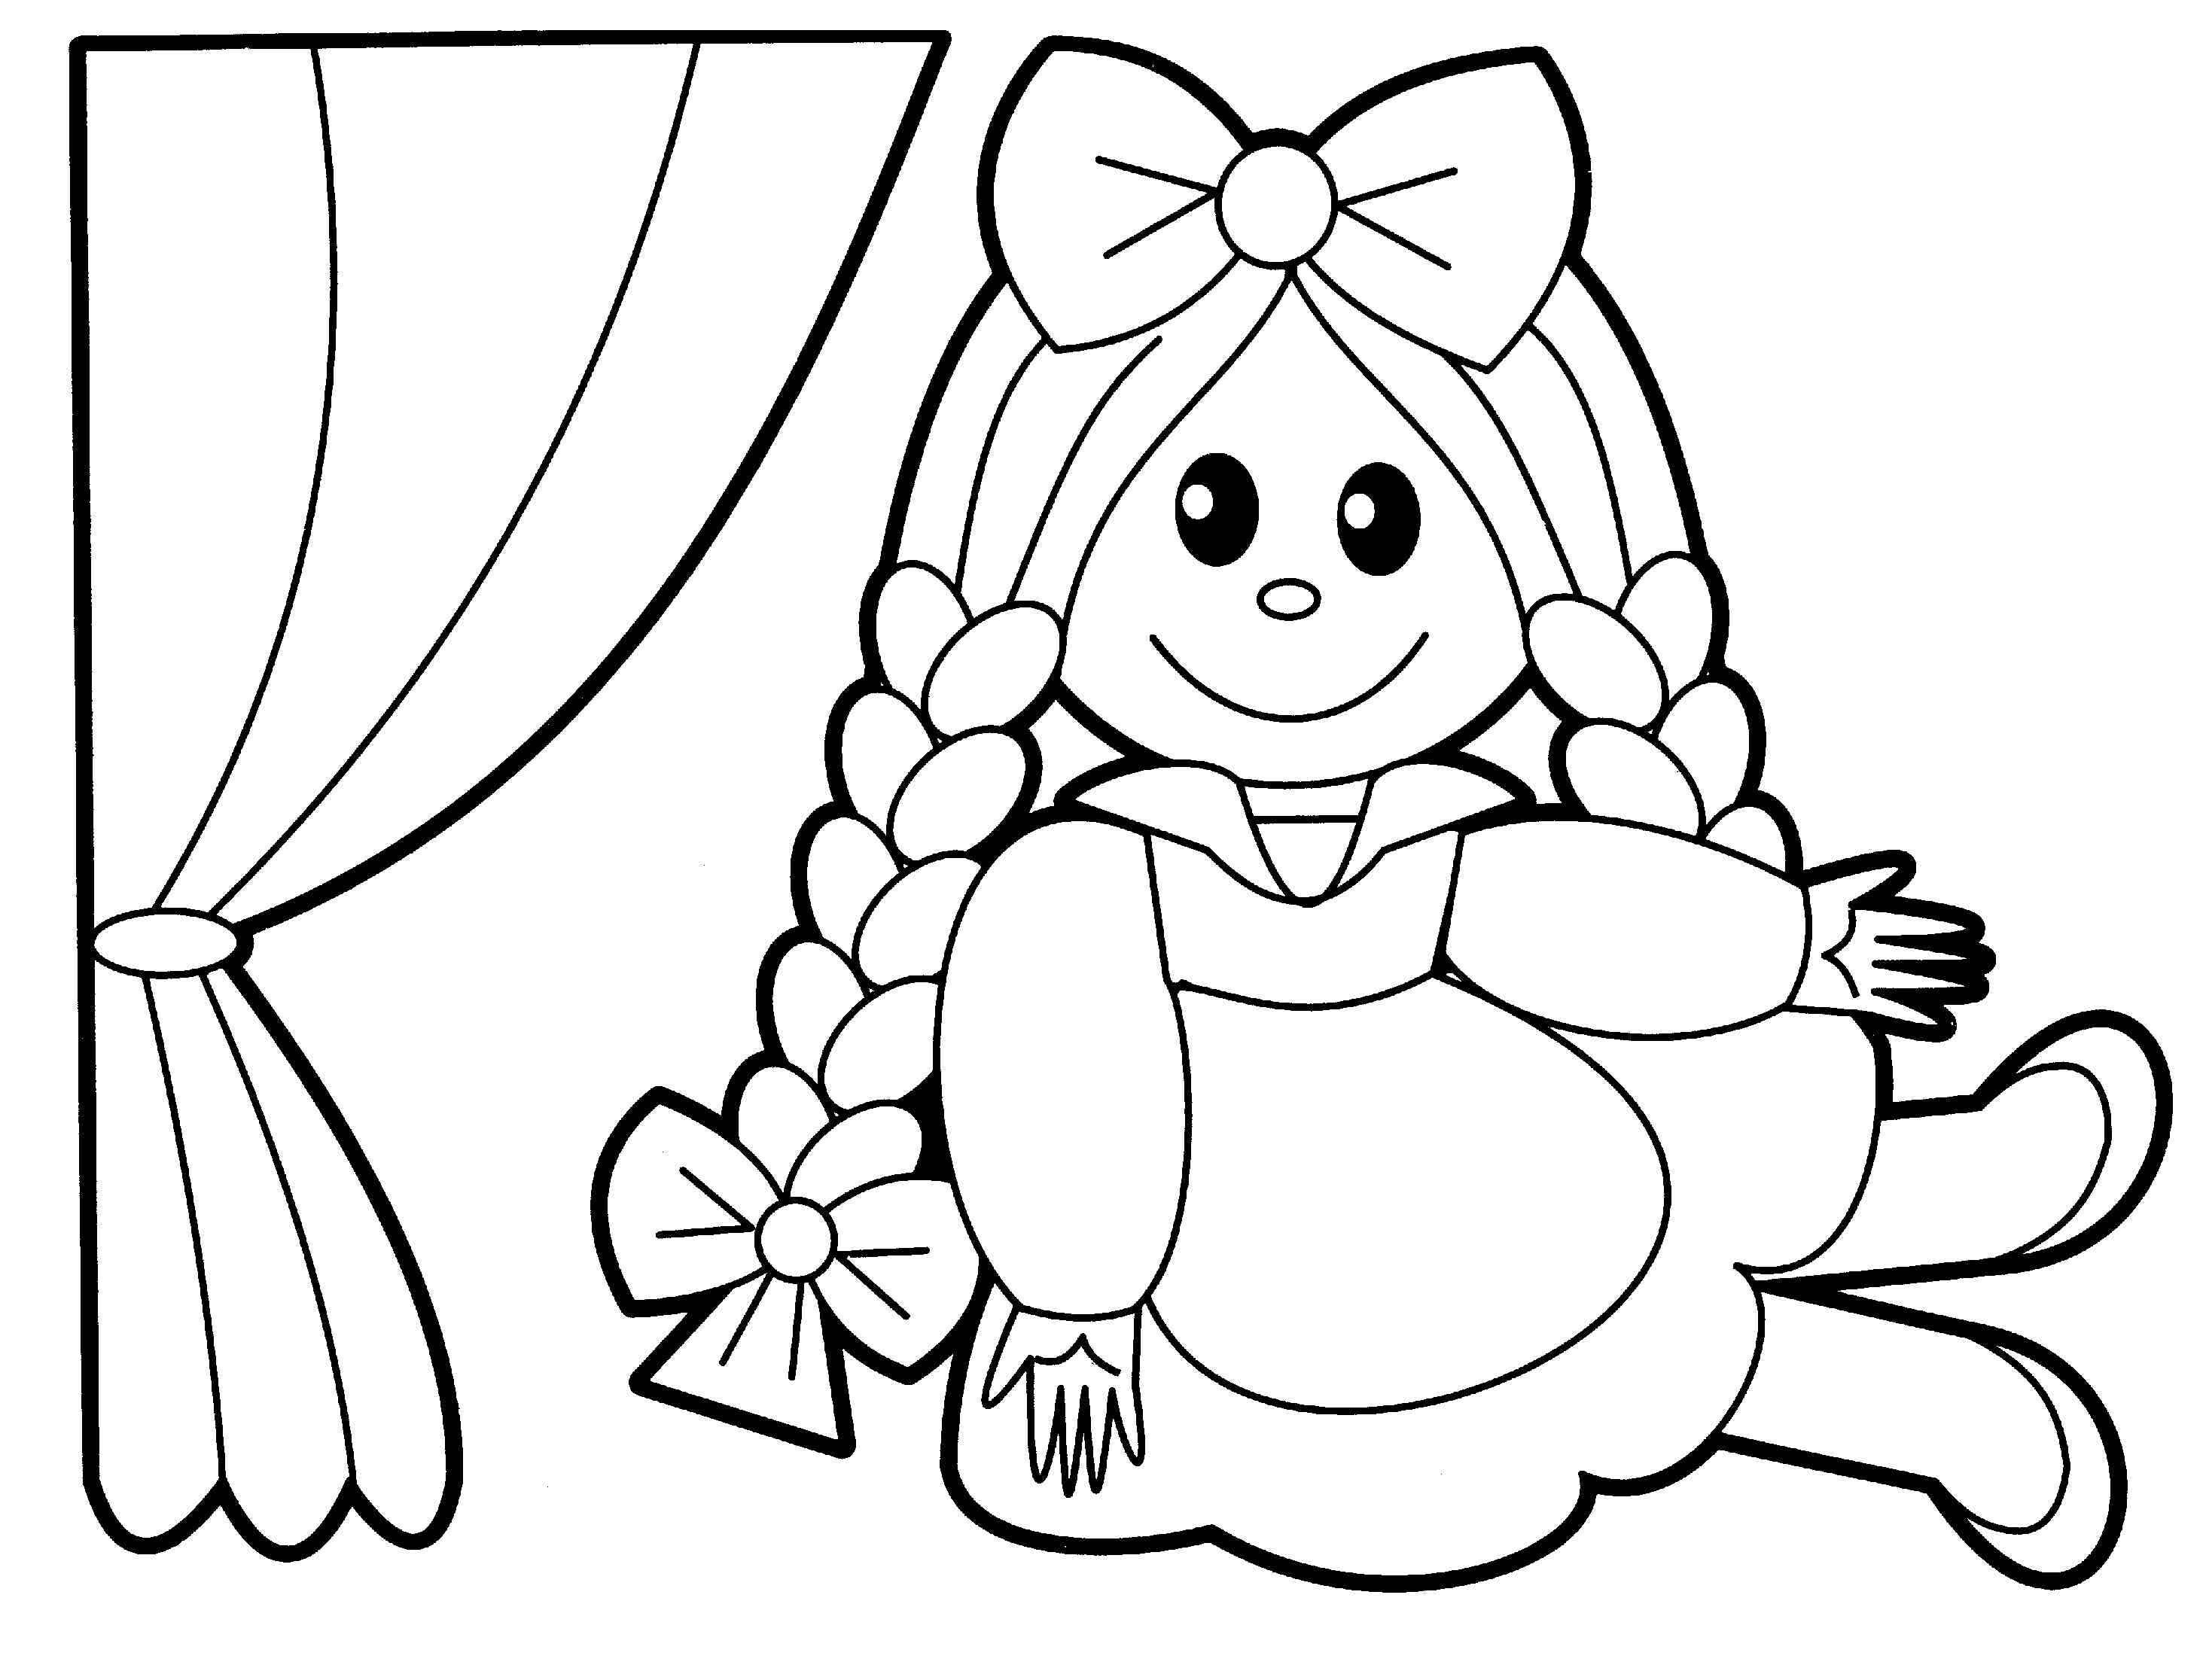 coloring templates for kids butterfly coloring pages for adults best coloring pages for coloring templates kids